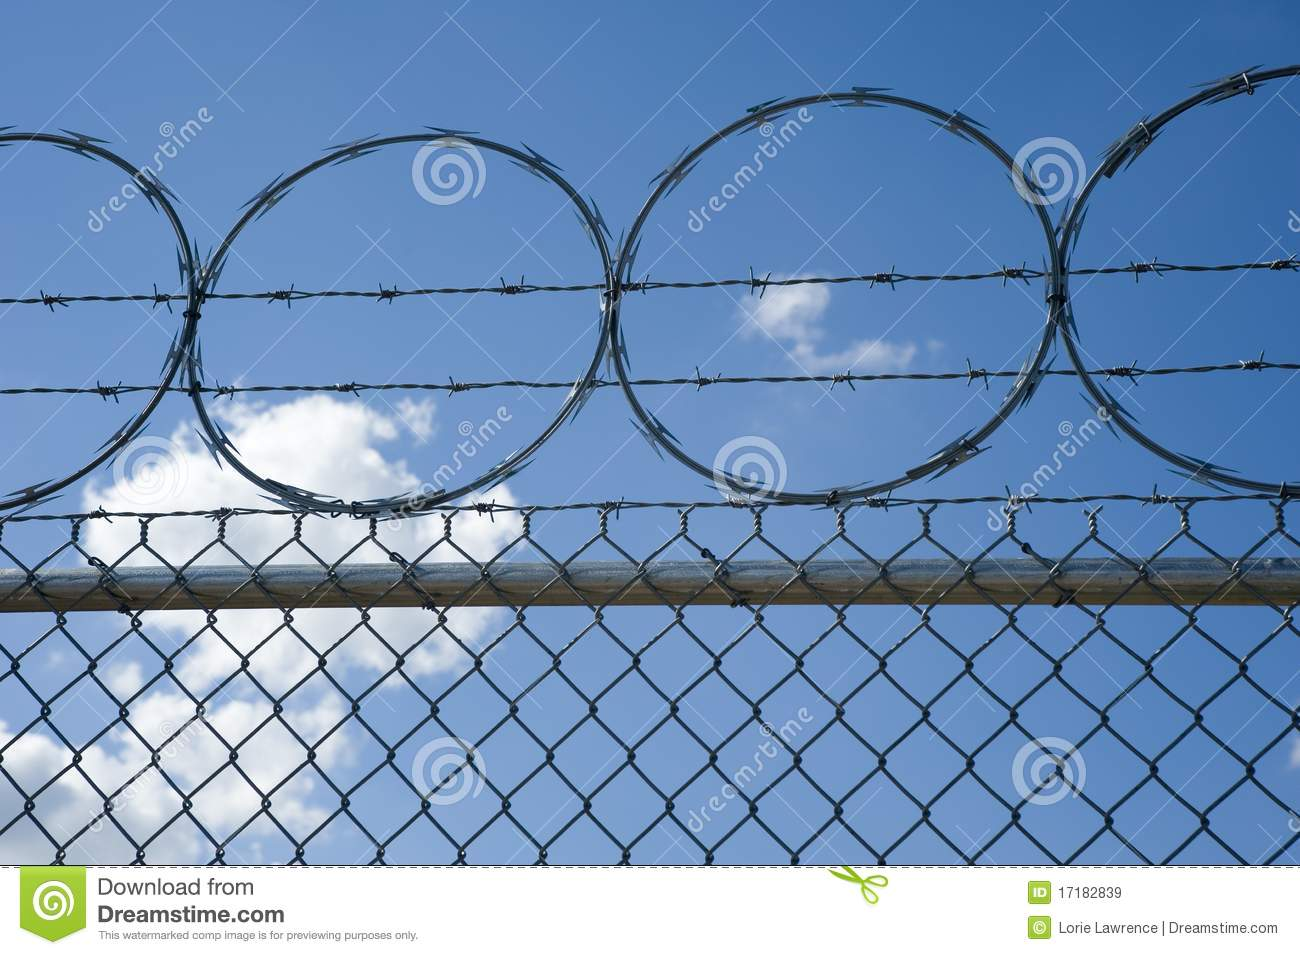 Razor And Barb Wire On Top Of Chain Link Fence Royalty ...